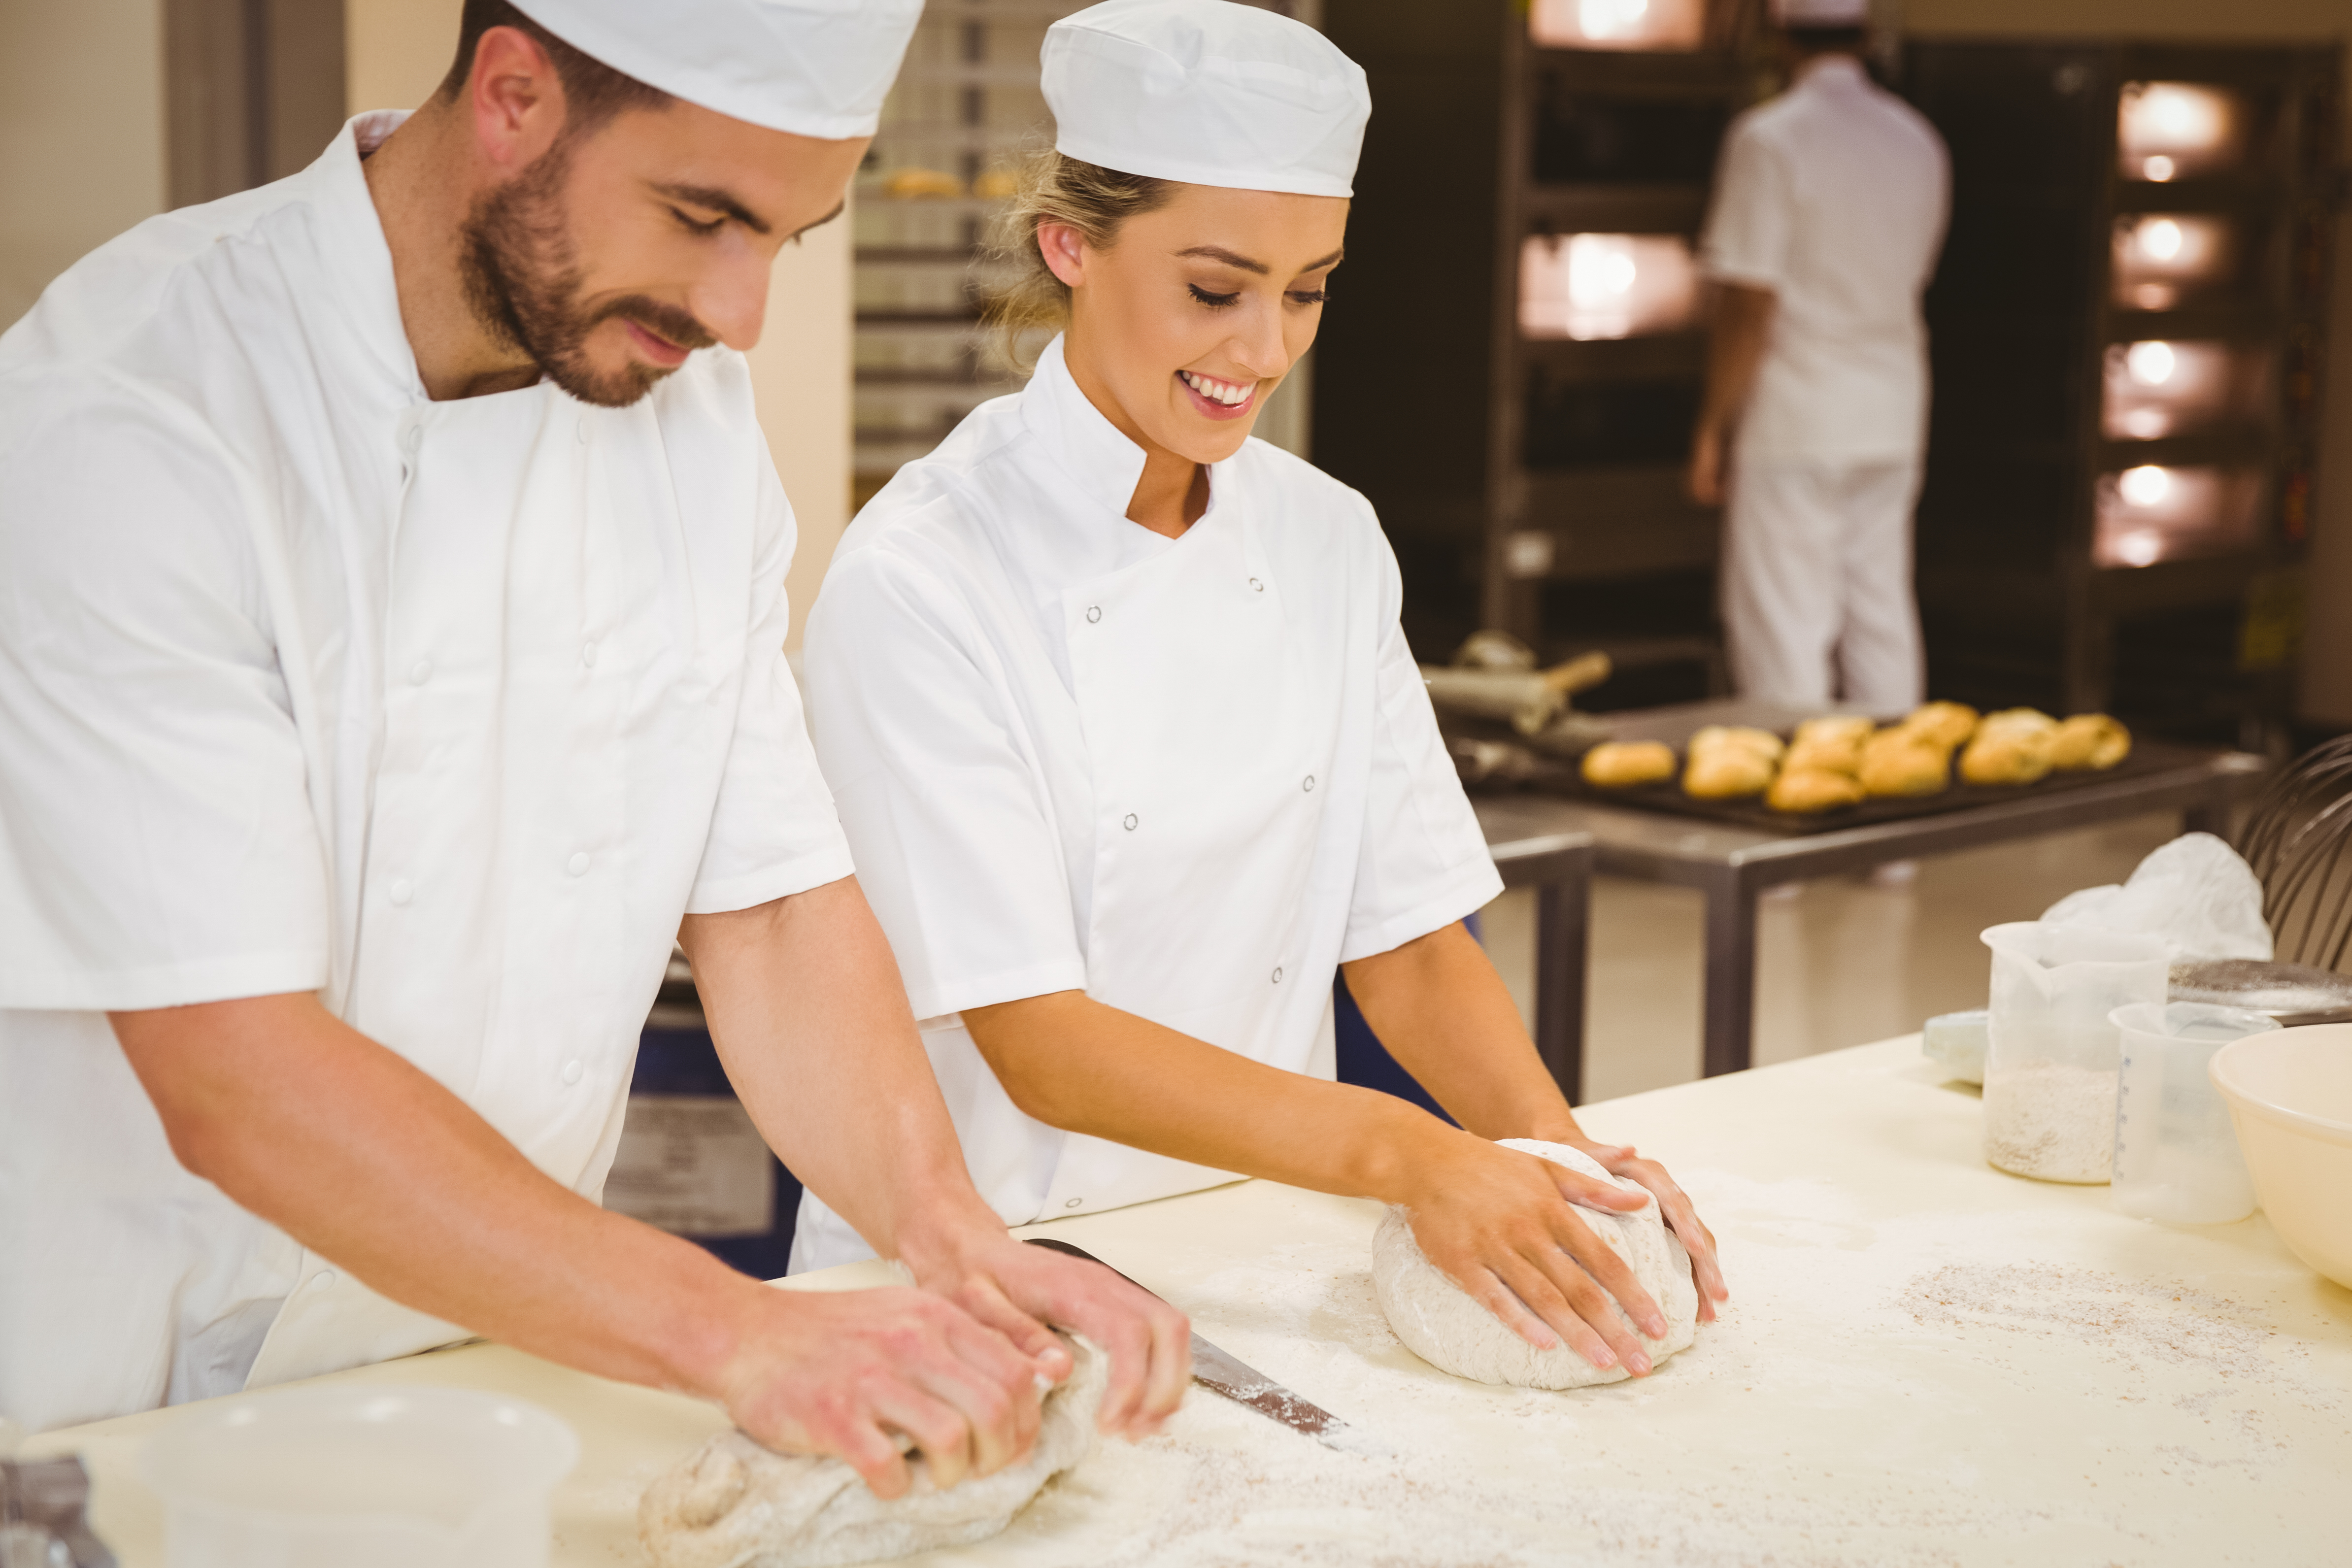 Team of bakers kneading dough in a comme